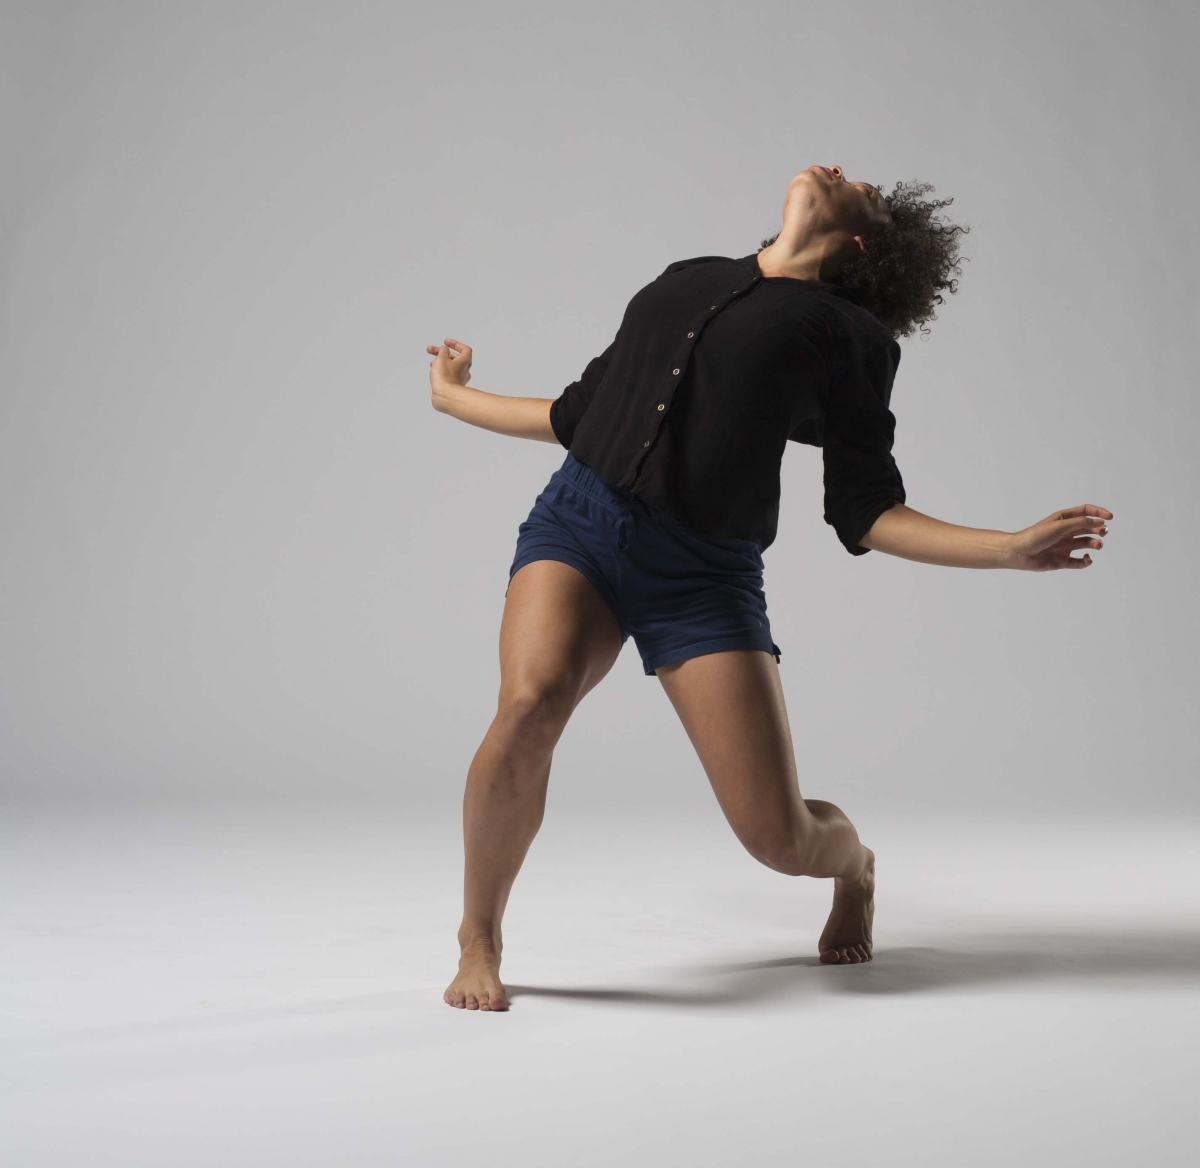 university of utah college of fine arts school of dance the school of dance offers a comprehensive and rigorous course of study designed for those serious professional aspirations